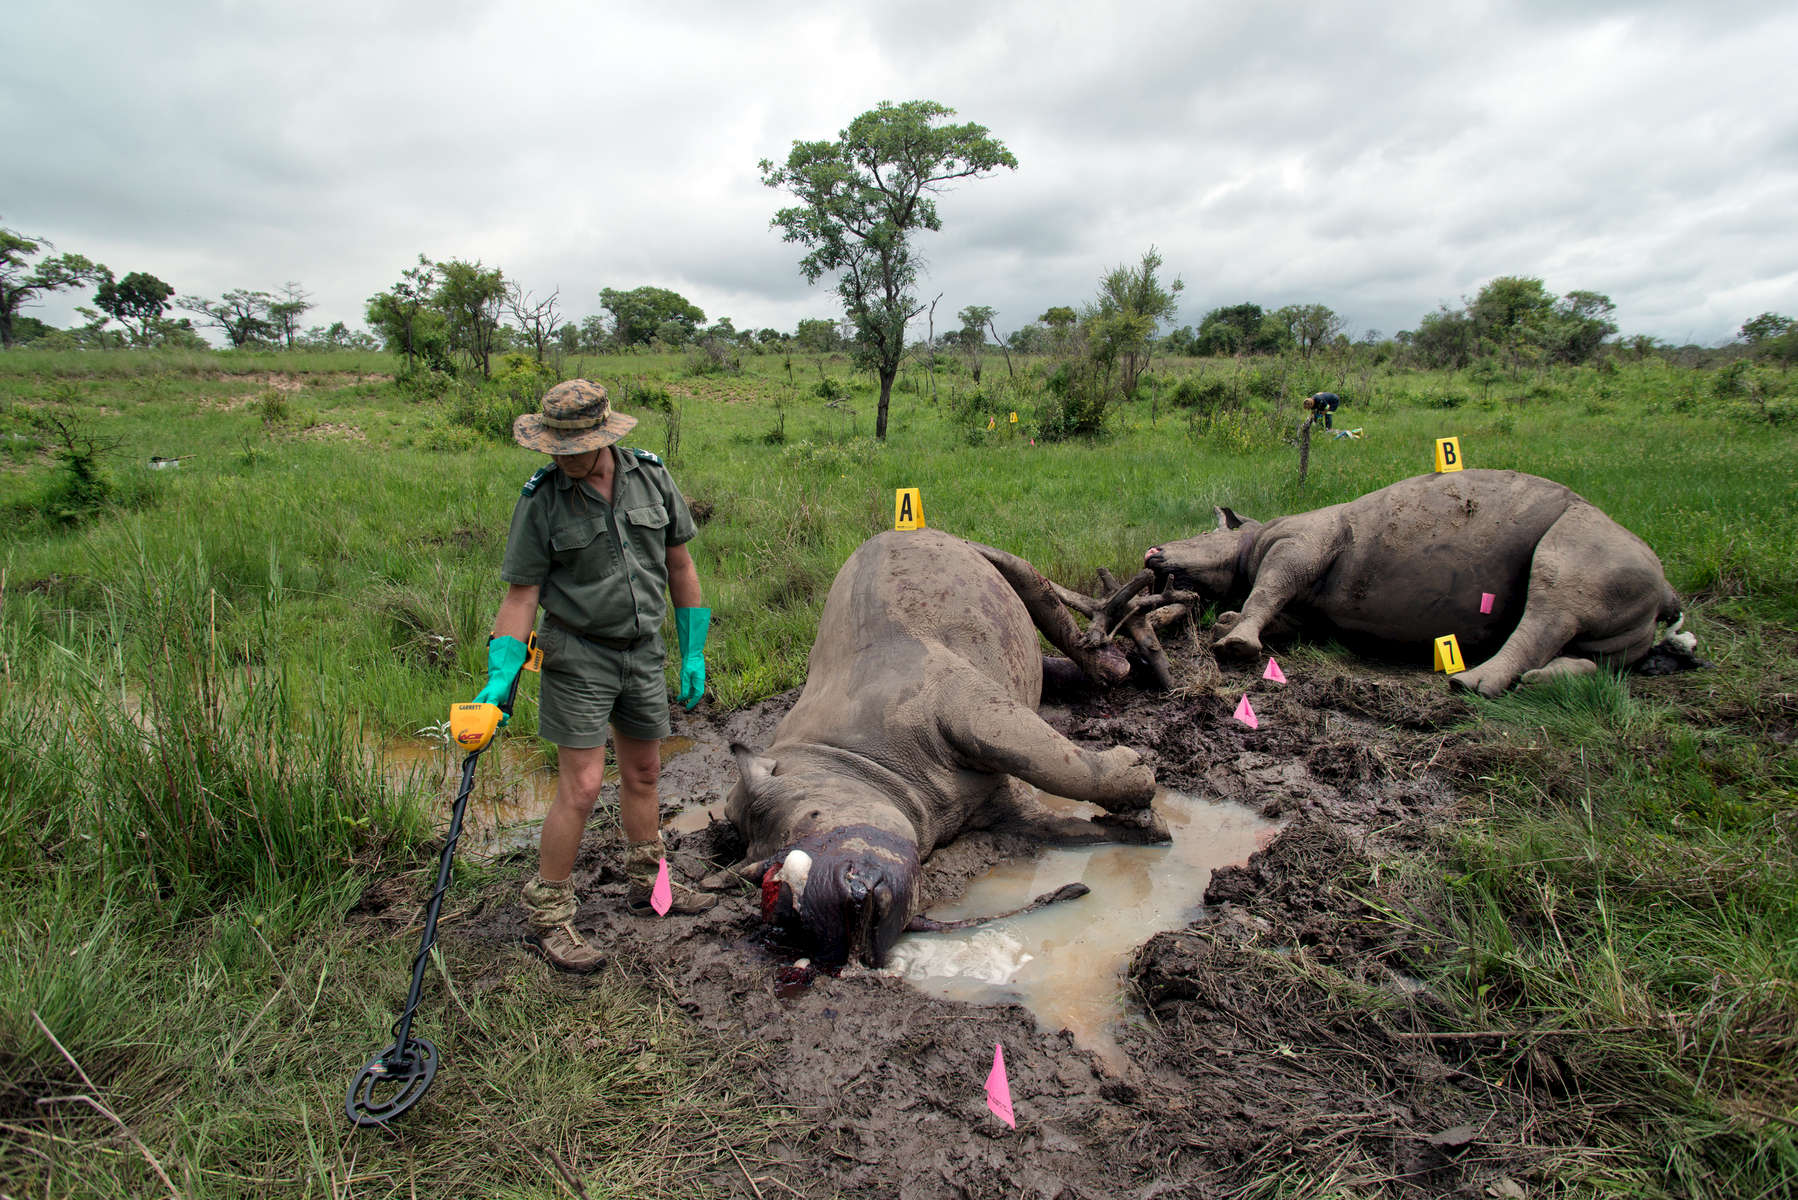 An onslaught of rhino poaching at Kruger National Park has left South African National Parks with a backlog of cases. The park's forensics team inspects a crime scene 10km from the park's edge, looking for the bullets that killed the rhinos along with any other evidence. The culprit's are believed to be South African nationals and are part of a gang that have killed several rhinos, always taking only one--the larger-horn. Two rhinos were shot and killed- a male and female near a drinking hole. The female was thought to be pregnant, which is why she was accompanied by a male.